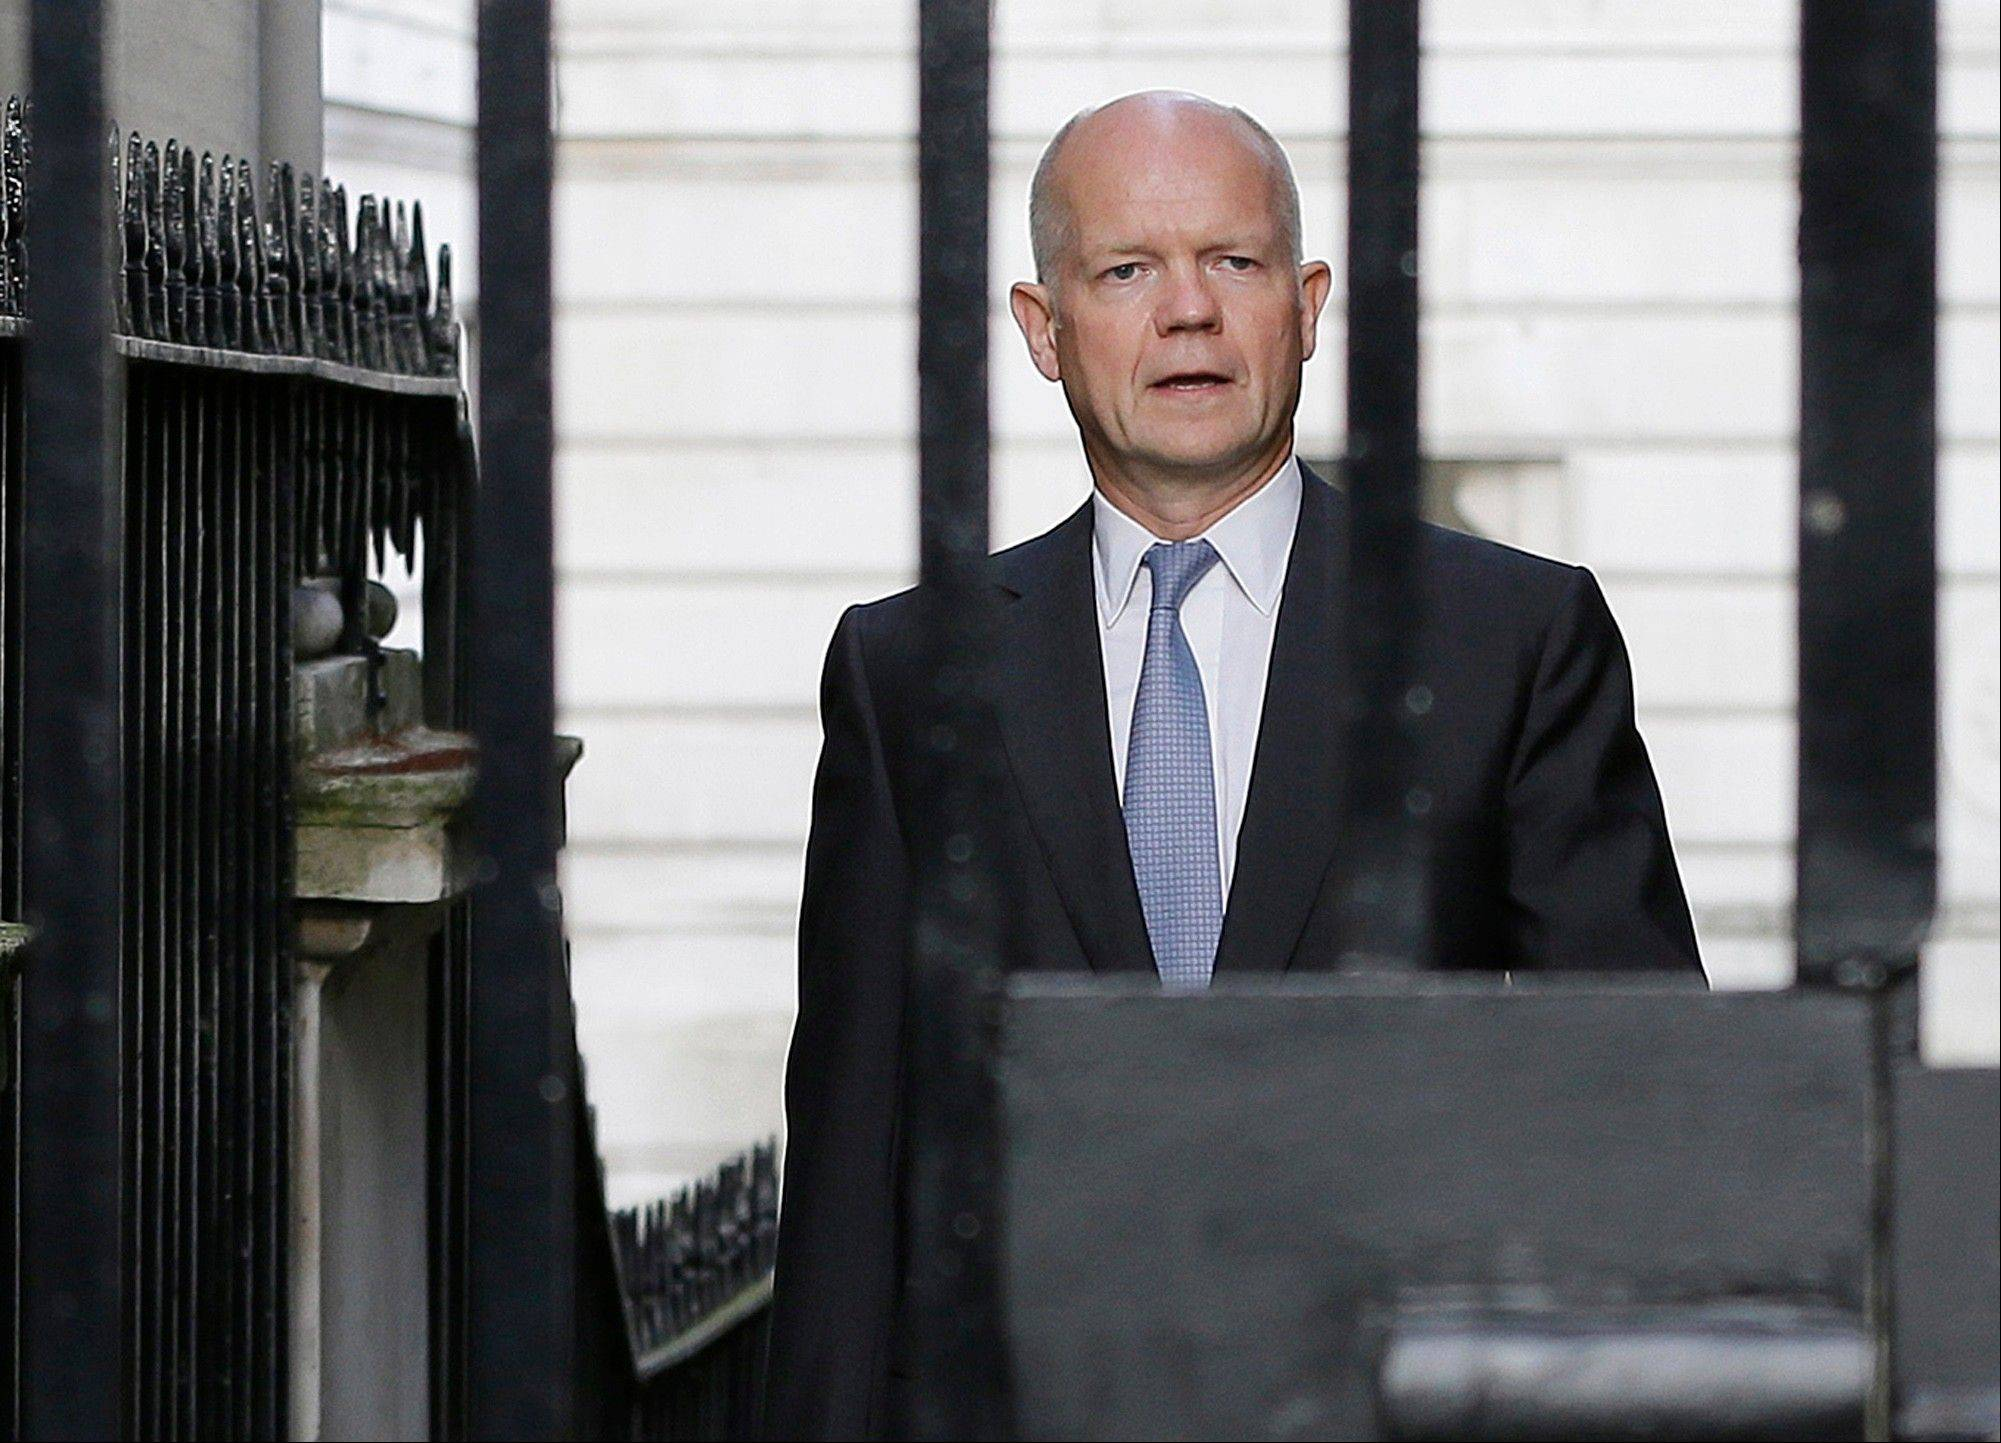 Britain Foreign Secretary William Hague walks to Downing Street Wednesday ahead of a national security meeting to be held at the Cabinet office with Prime Minister David Cameron on the situation in Syria. The U.S. and international partners were unlikely to undertake military action before Thursday. That's when Cameron will convene an emergency meeting of Parliament, where lawmakers were expected to vote on a motion clearing the way for a British response.